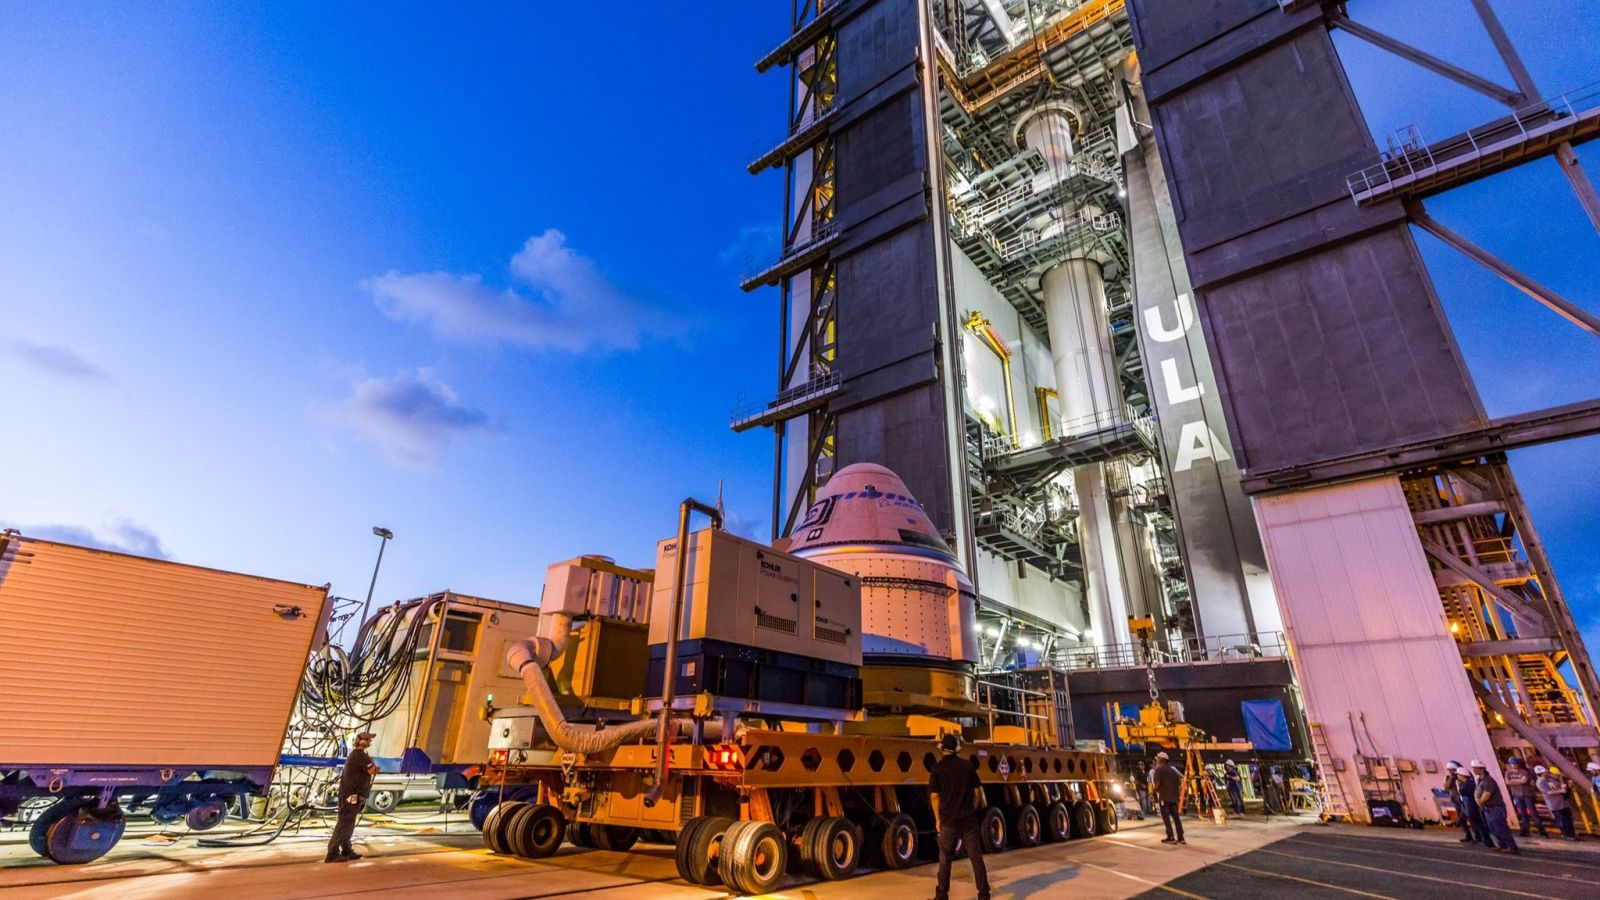 Starliner arrives at the Vertical Integration Facility to be lifted up and attached to the waiting Atlas 5 rocket. Credit: ULA